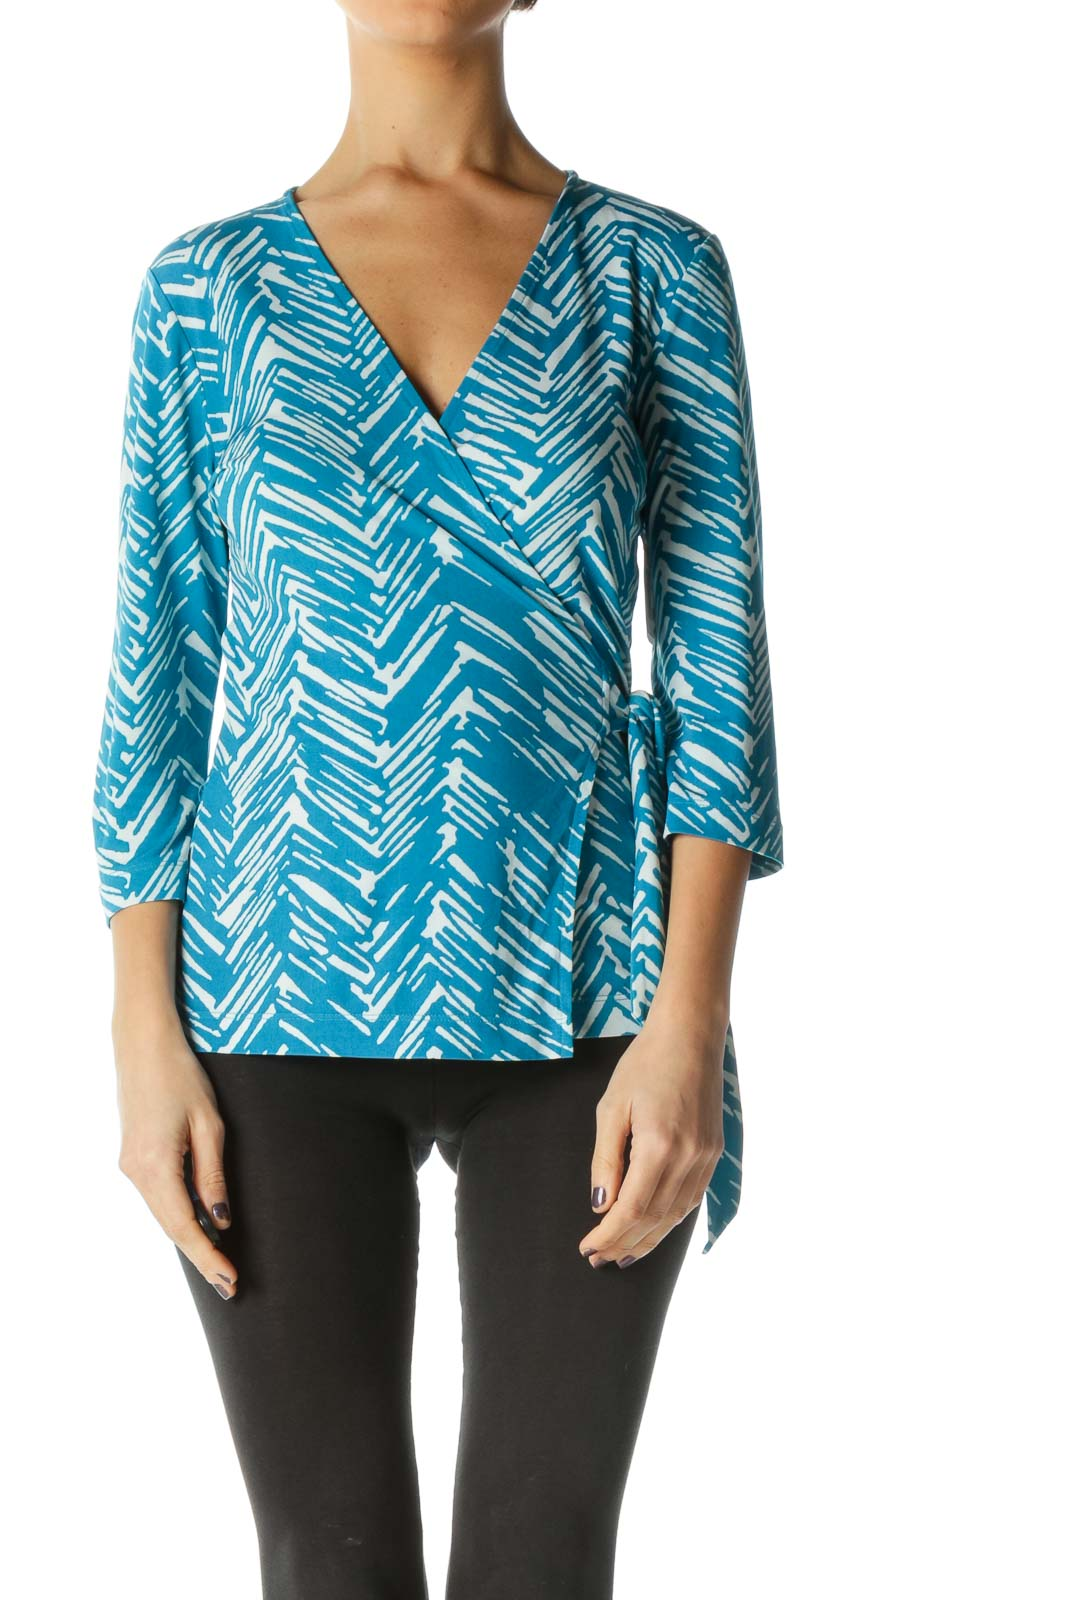 Blue 3/4 Sleeve V Neck Casual Blouse